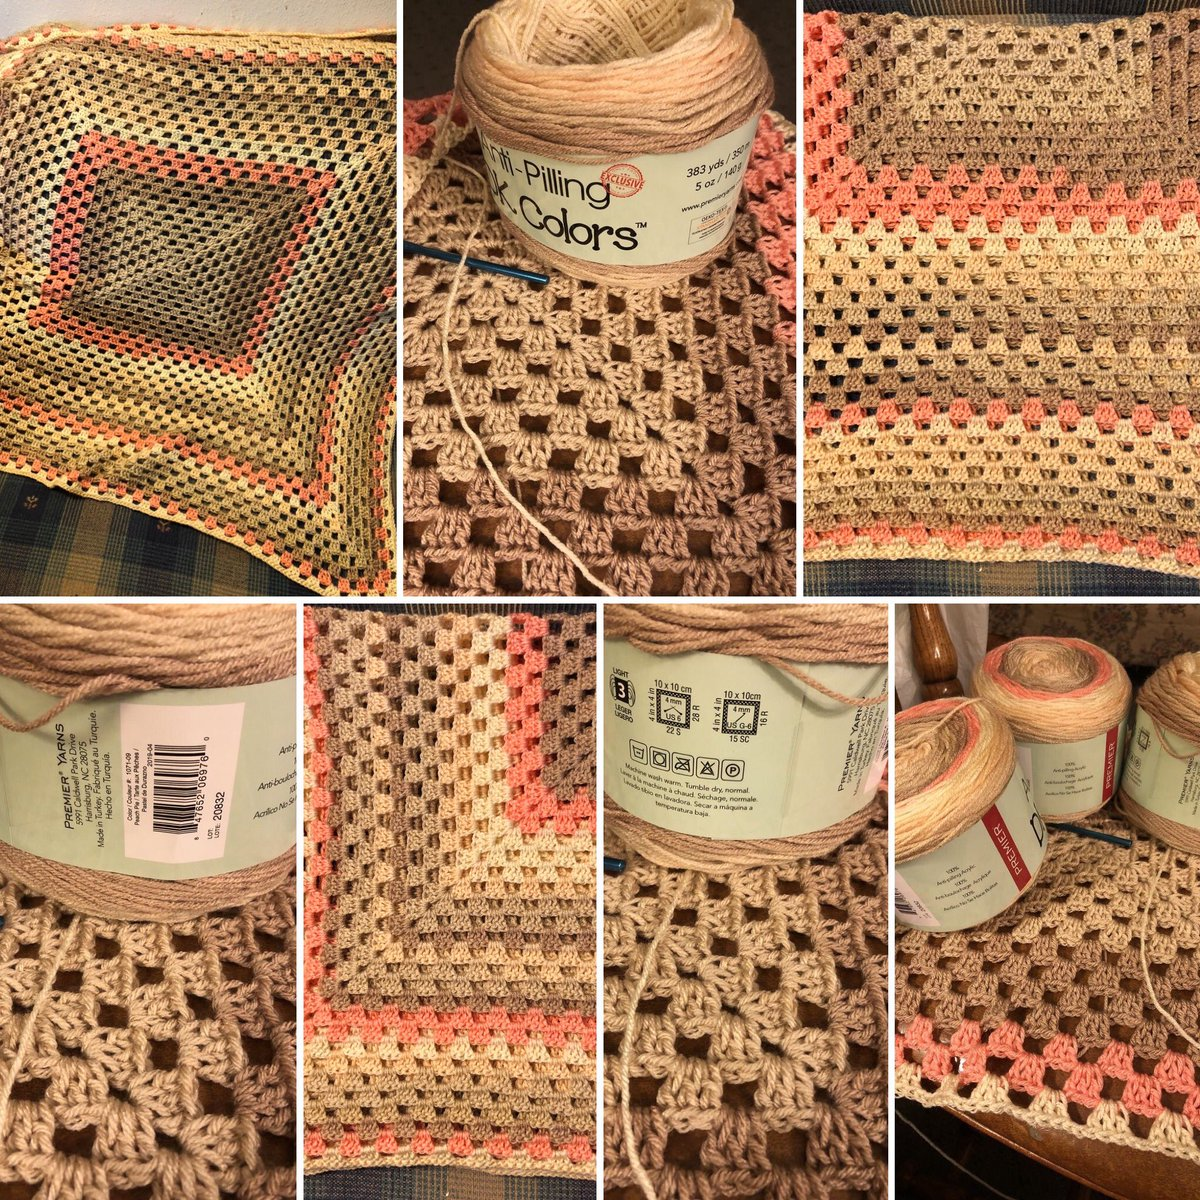 🧶 This very cool 😎 self striping yarn made a wonderful baby sized blanket. The color is 'Peach Pie.' It turned out more like 'Creamcicle.'  #hobbies #babyblanket #crochetingmylifeaway #crochetpattern #grannysquare #endlessgrannysquare #crochetbabyblanket #yarn #yarnaddict https://t.co/dF7fmSE5nU